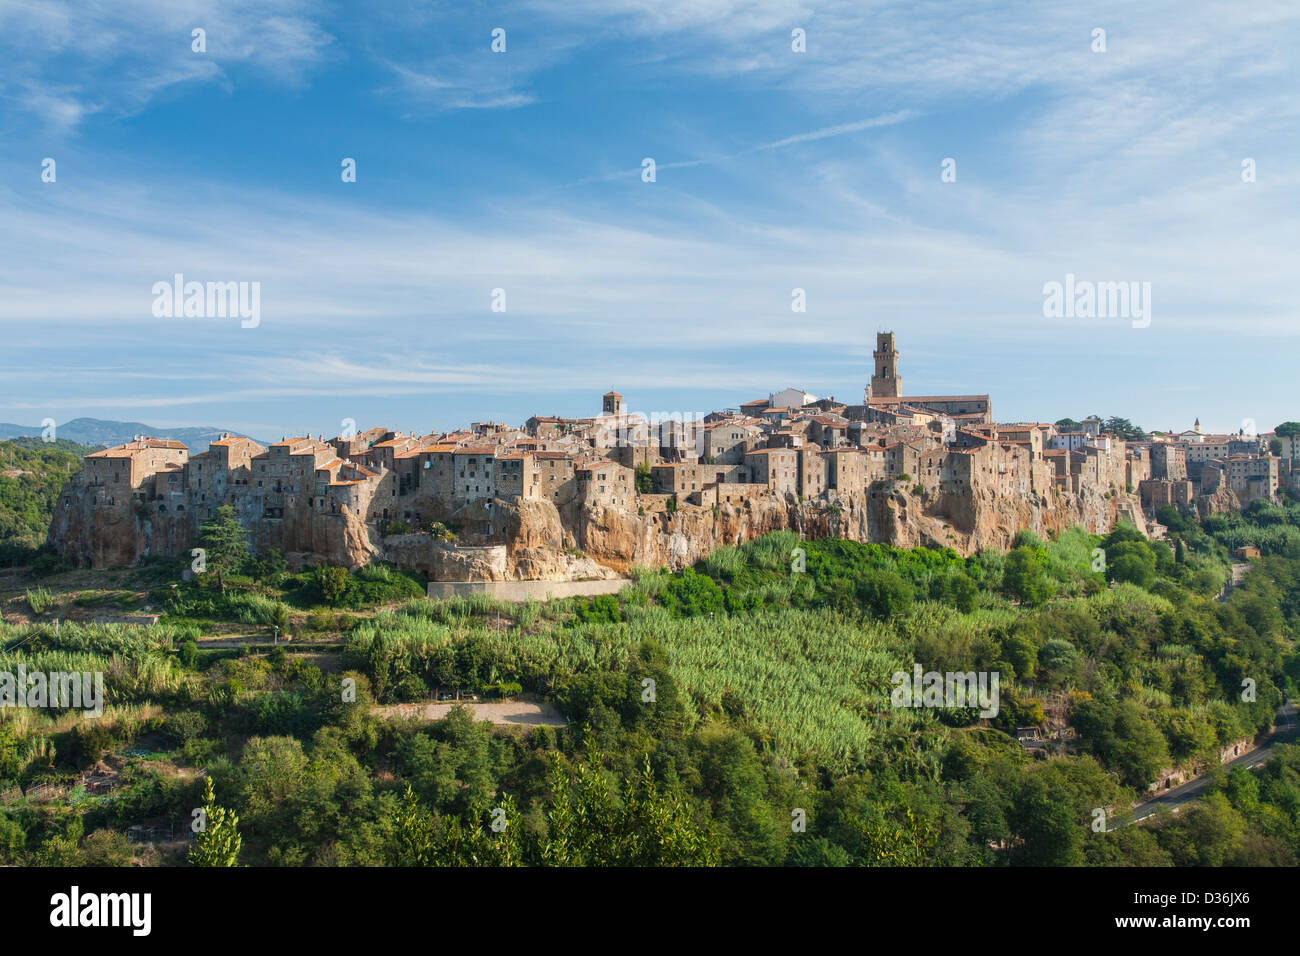 The ancient town of Pitigliano, Grosseto Province, Tuscany, Italy. - Stock Image